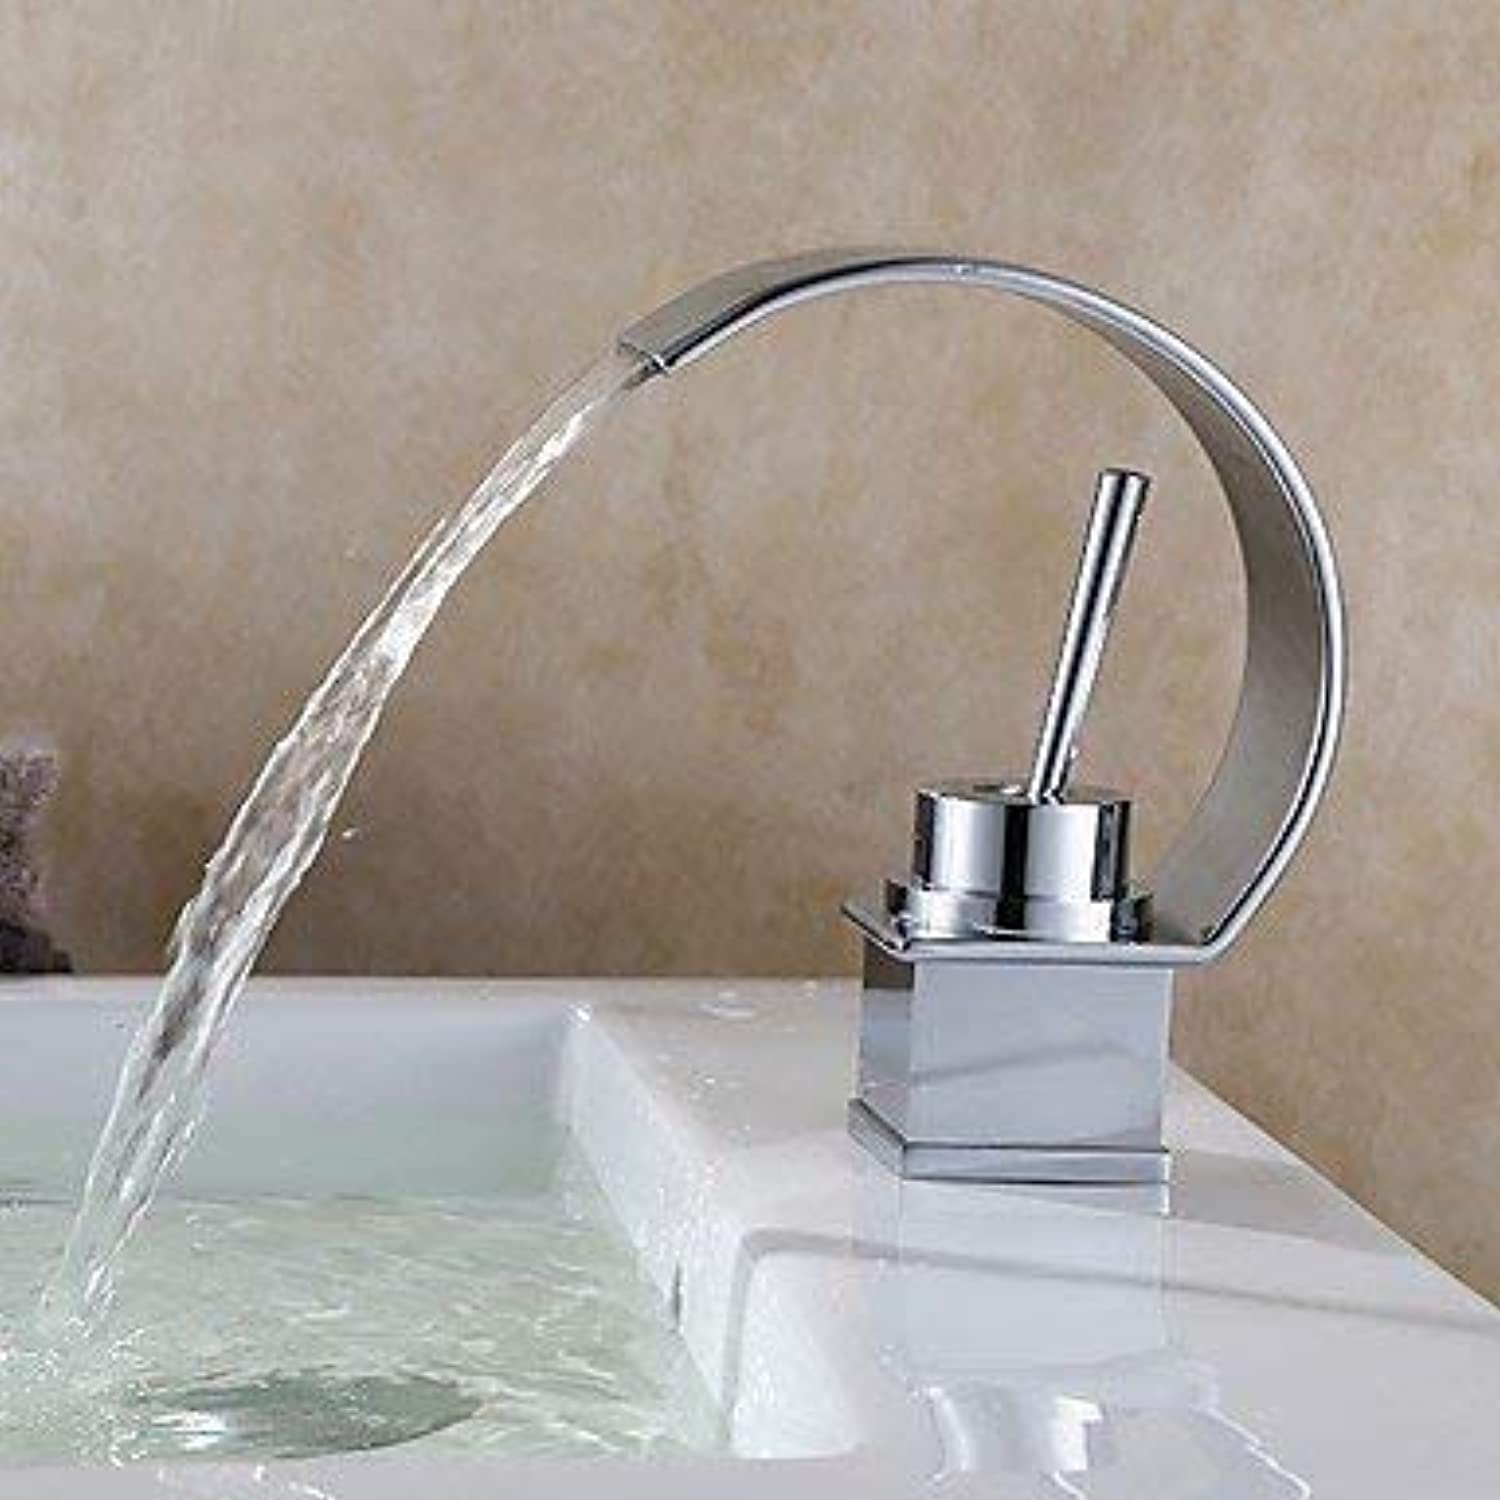 BESTHOO Modern Modern Style Special Model Center Waterfall with Ceramic Valve One-Hand A Hole for Chrome, (color   -, Size   -)